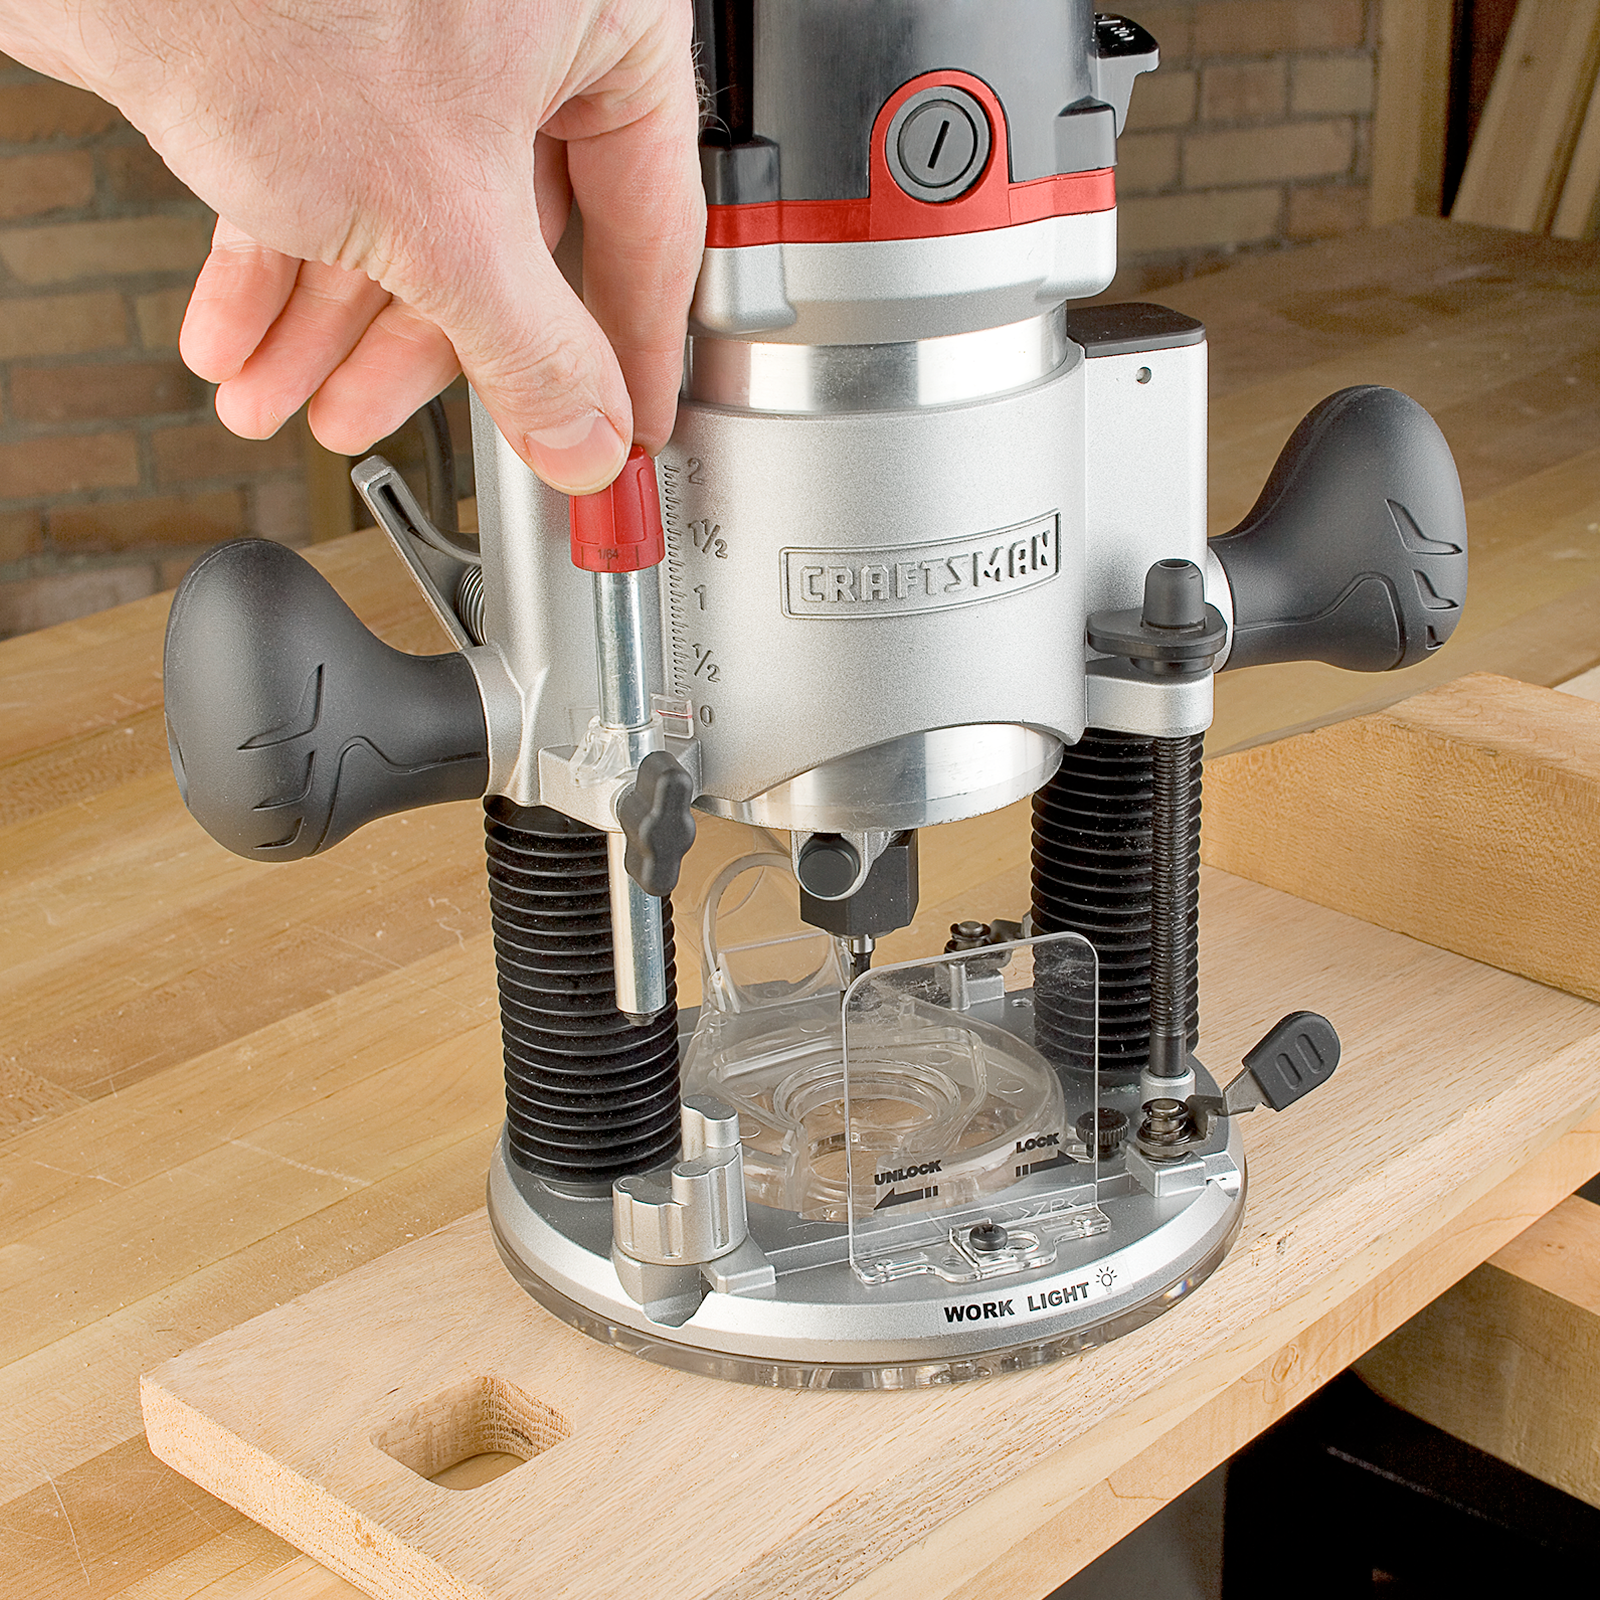 Craftsman 14 amp Digital Router